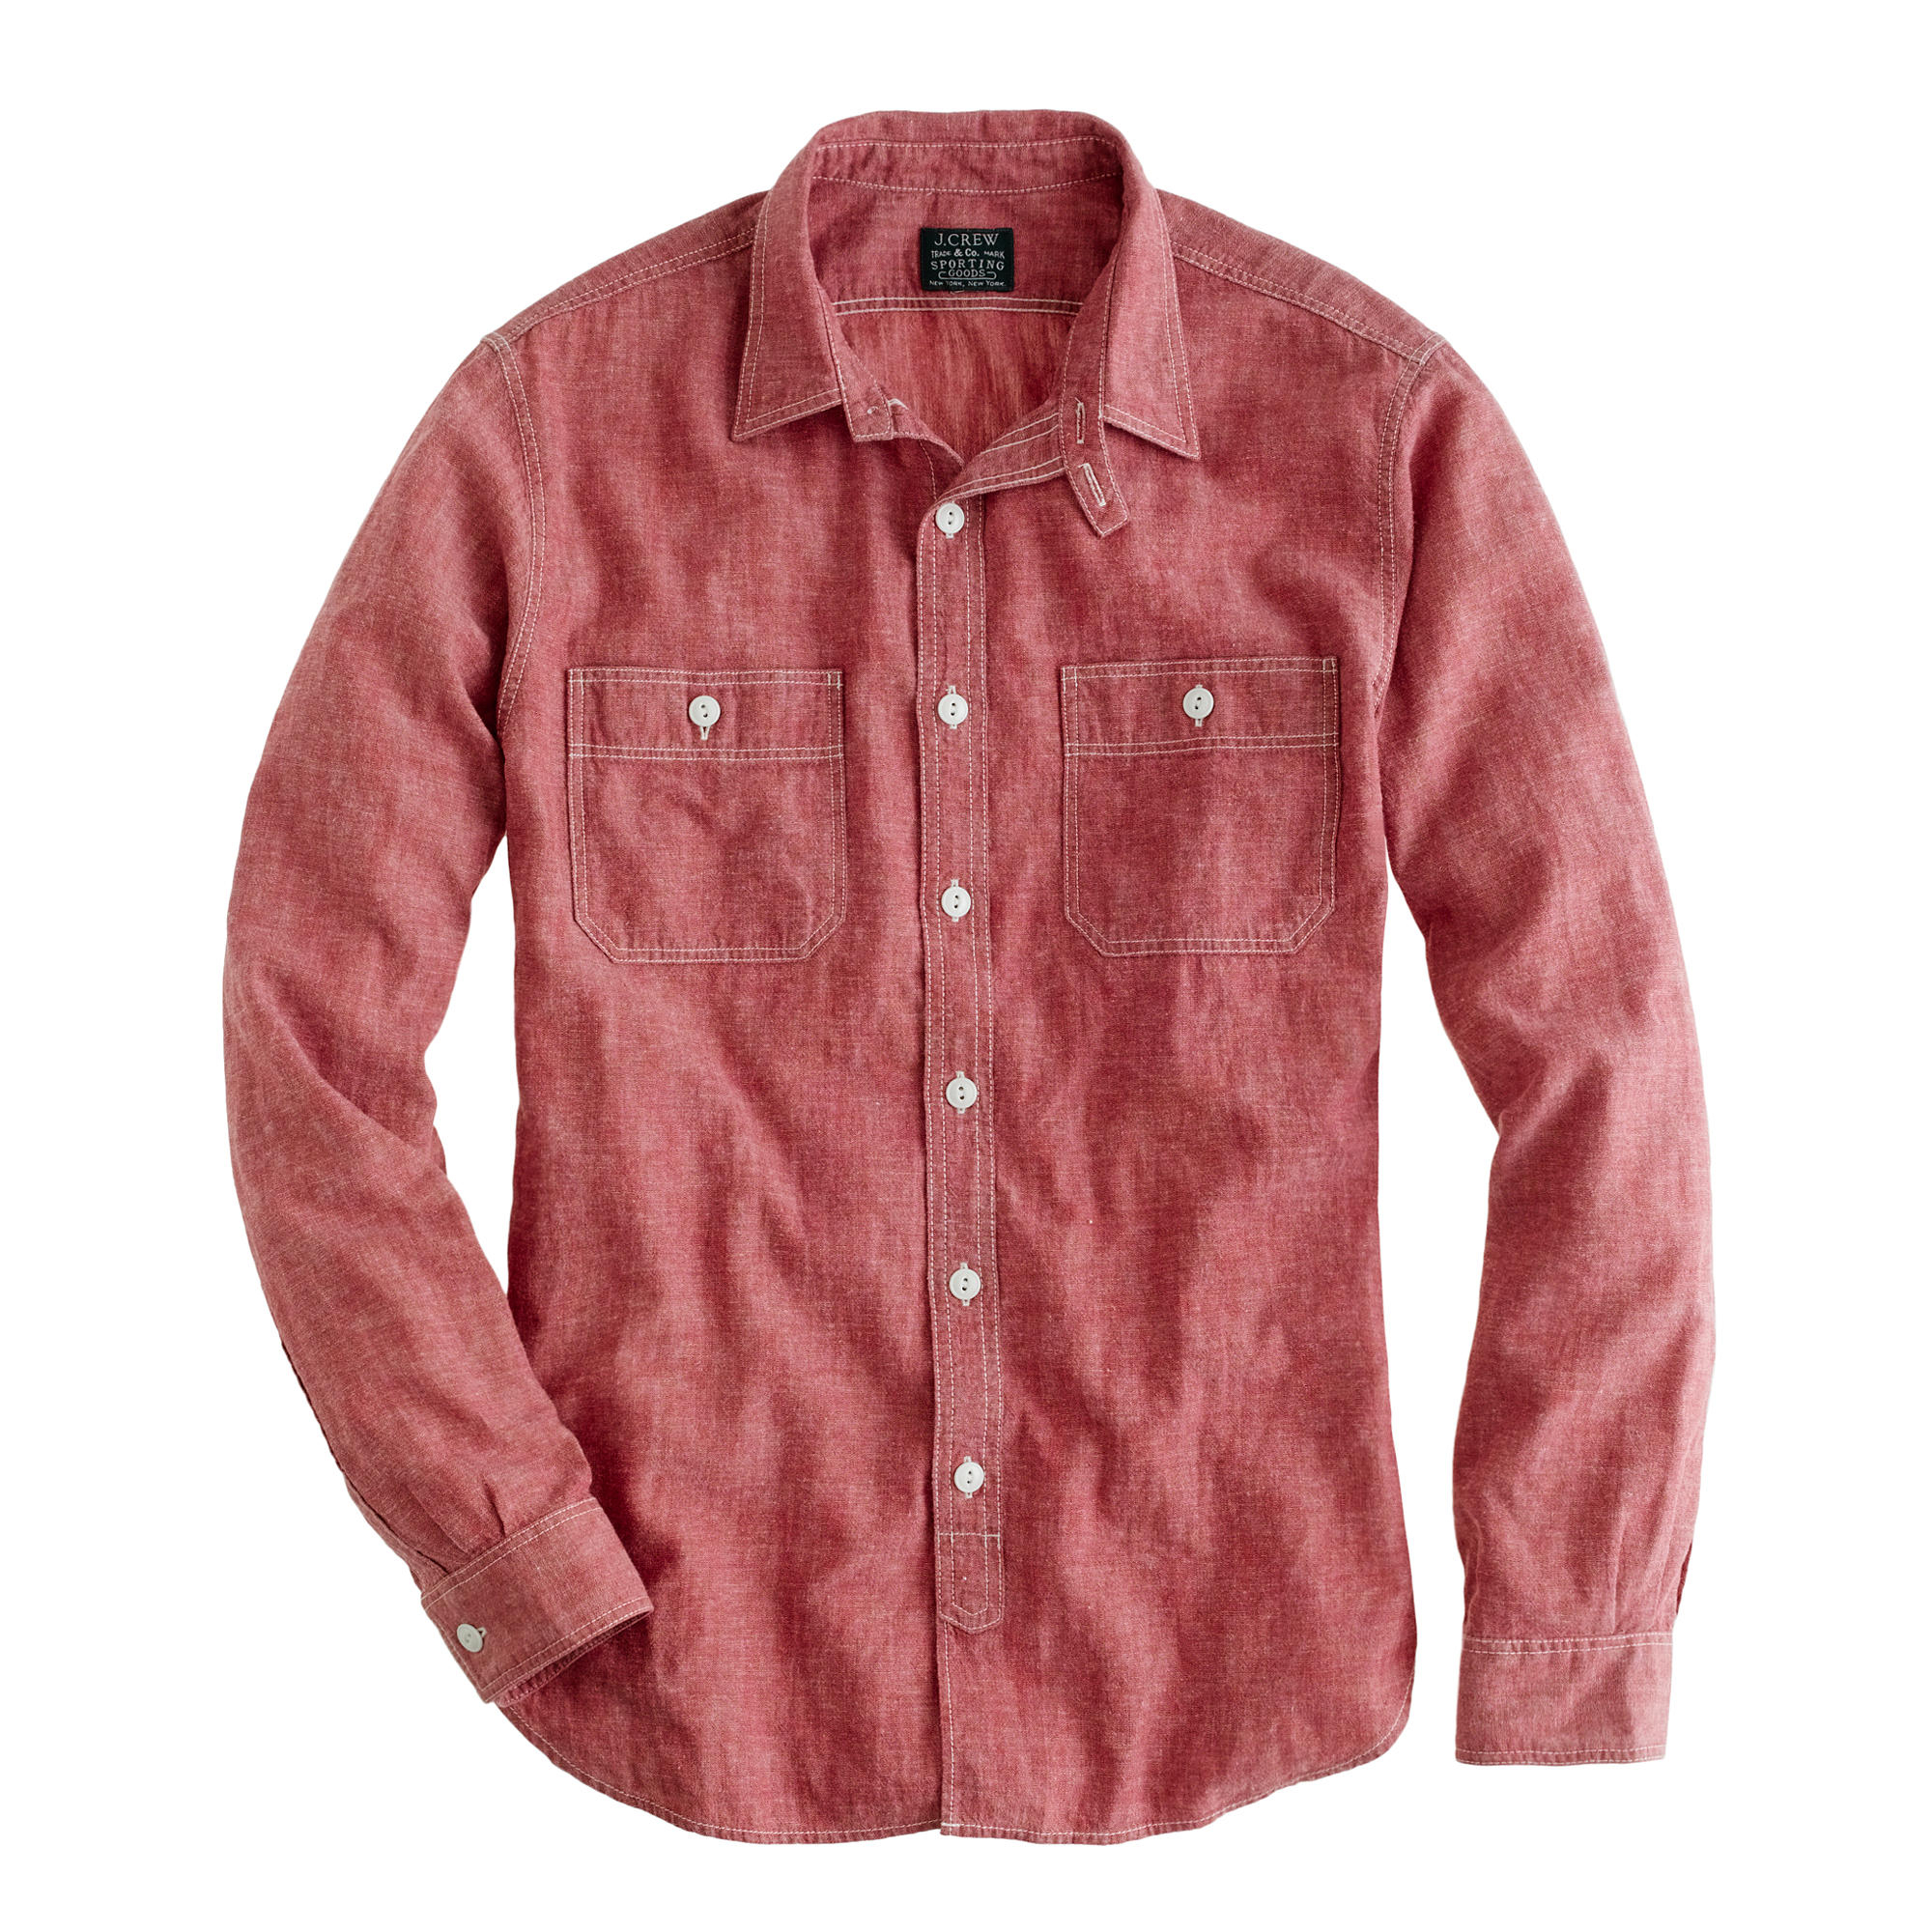 Find Red Kap SC14LB Western Style Long Sleeve Chambray Work Shirts at wholesale prices. Stylish yet comfortable/5(26).